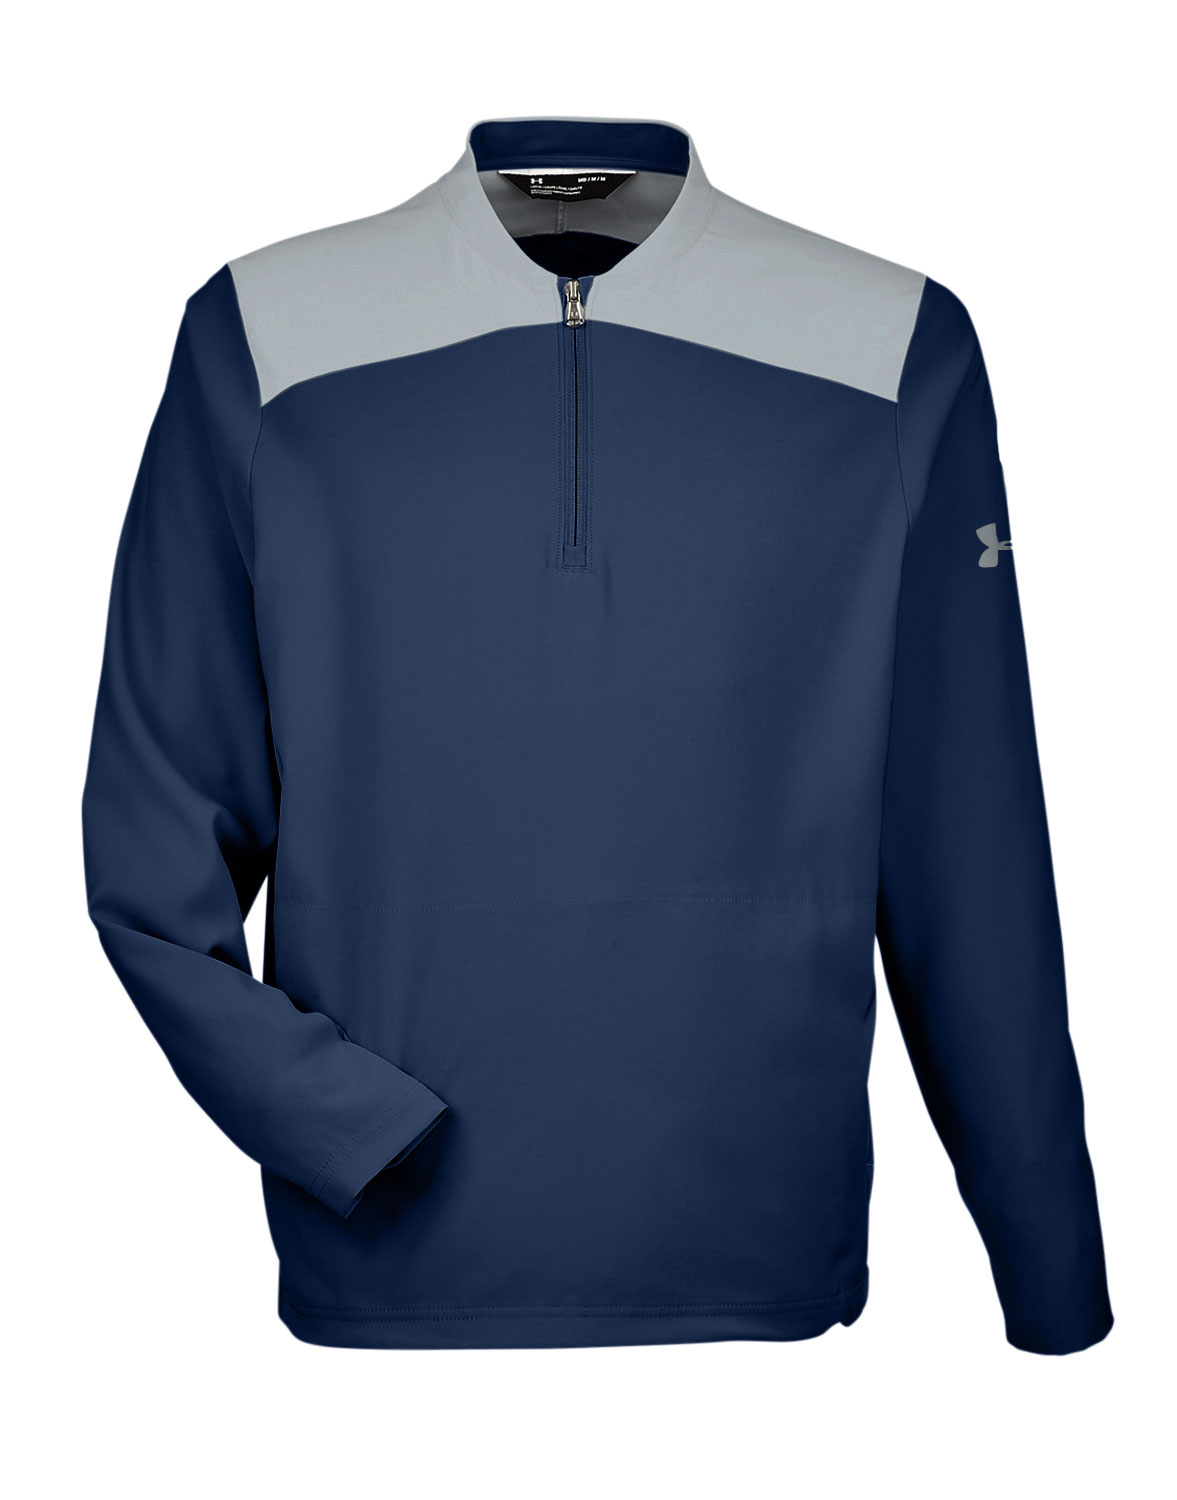 Under Armour Mens Coporate Triumph Cage Quarter-Zip